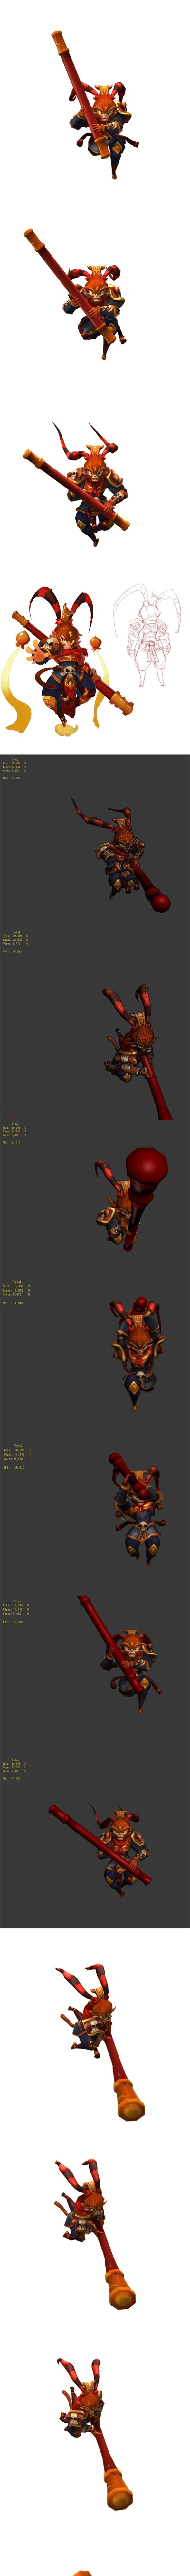 Game animated characters - Sun Da Sheng - 3DOcean Item for Sale